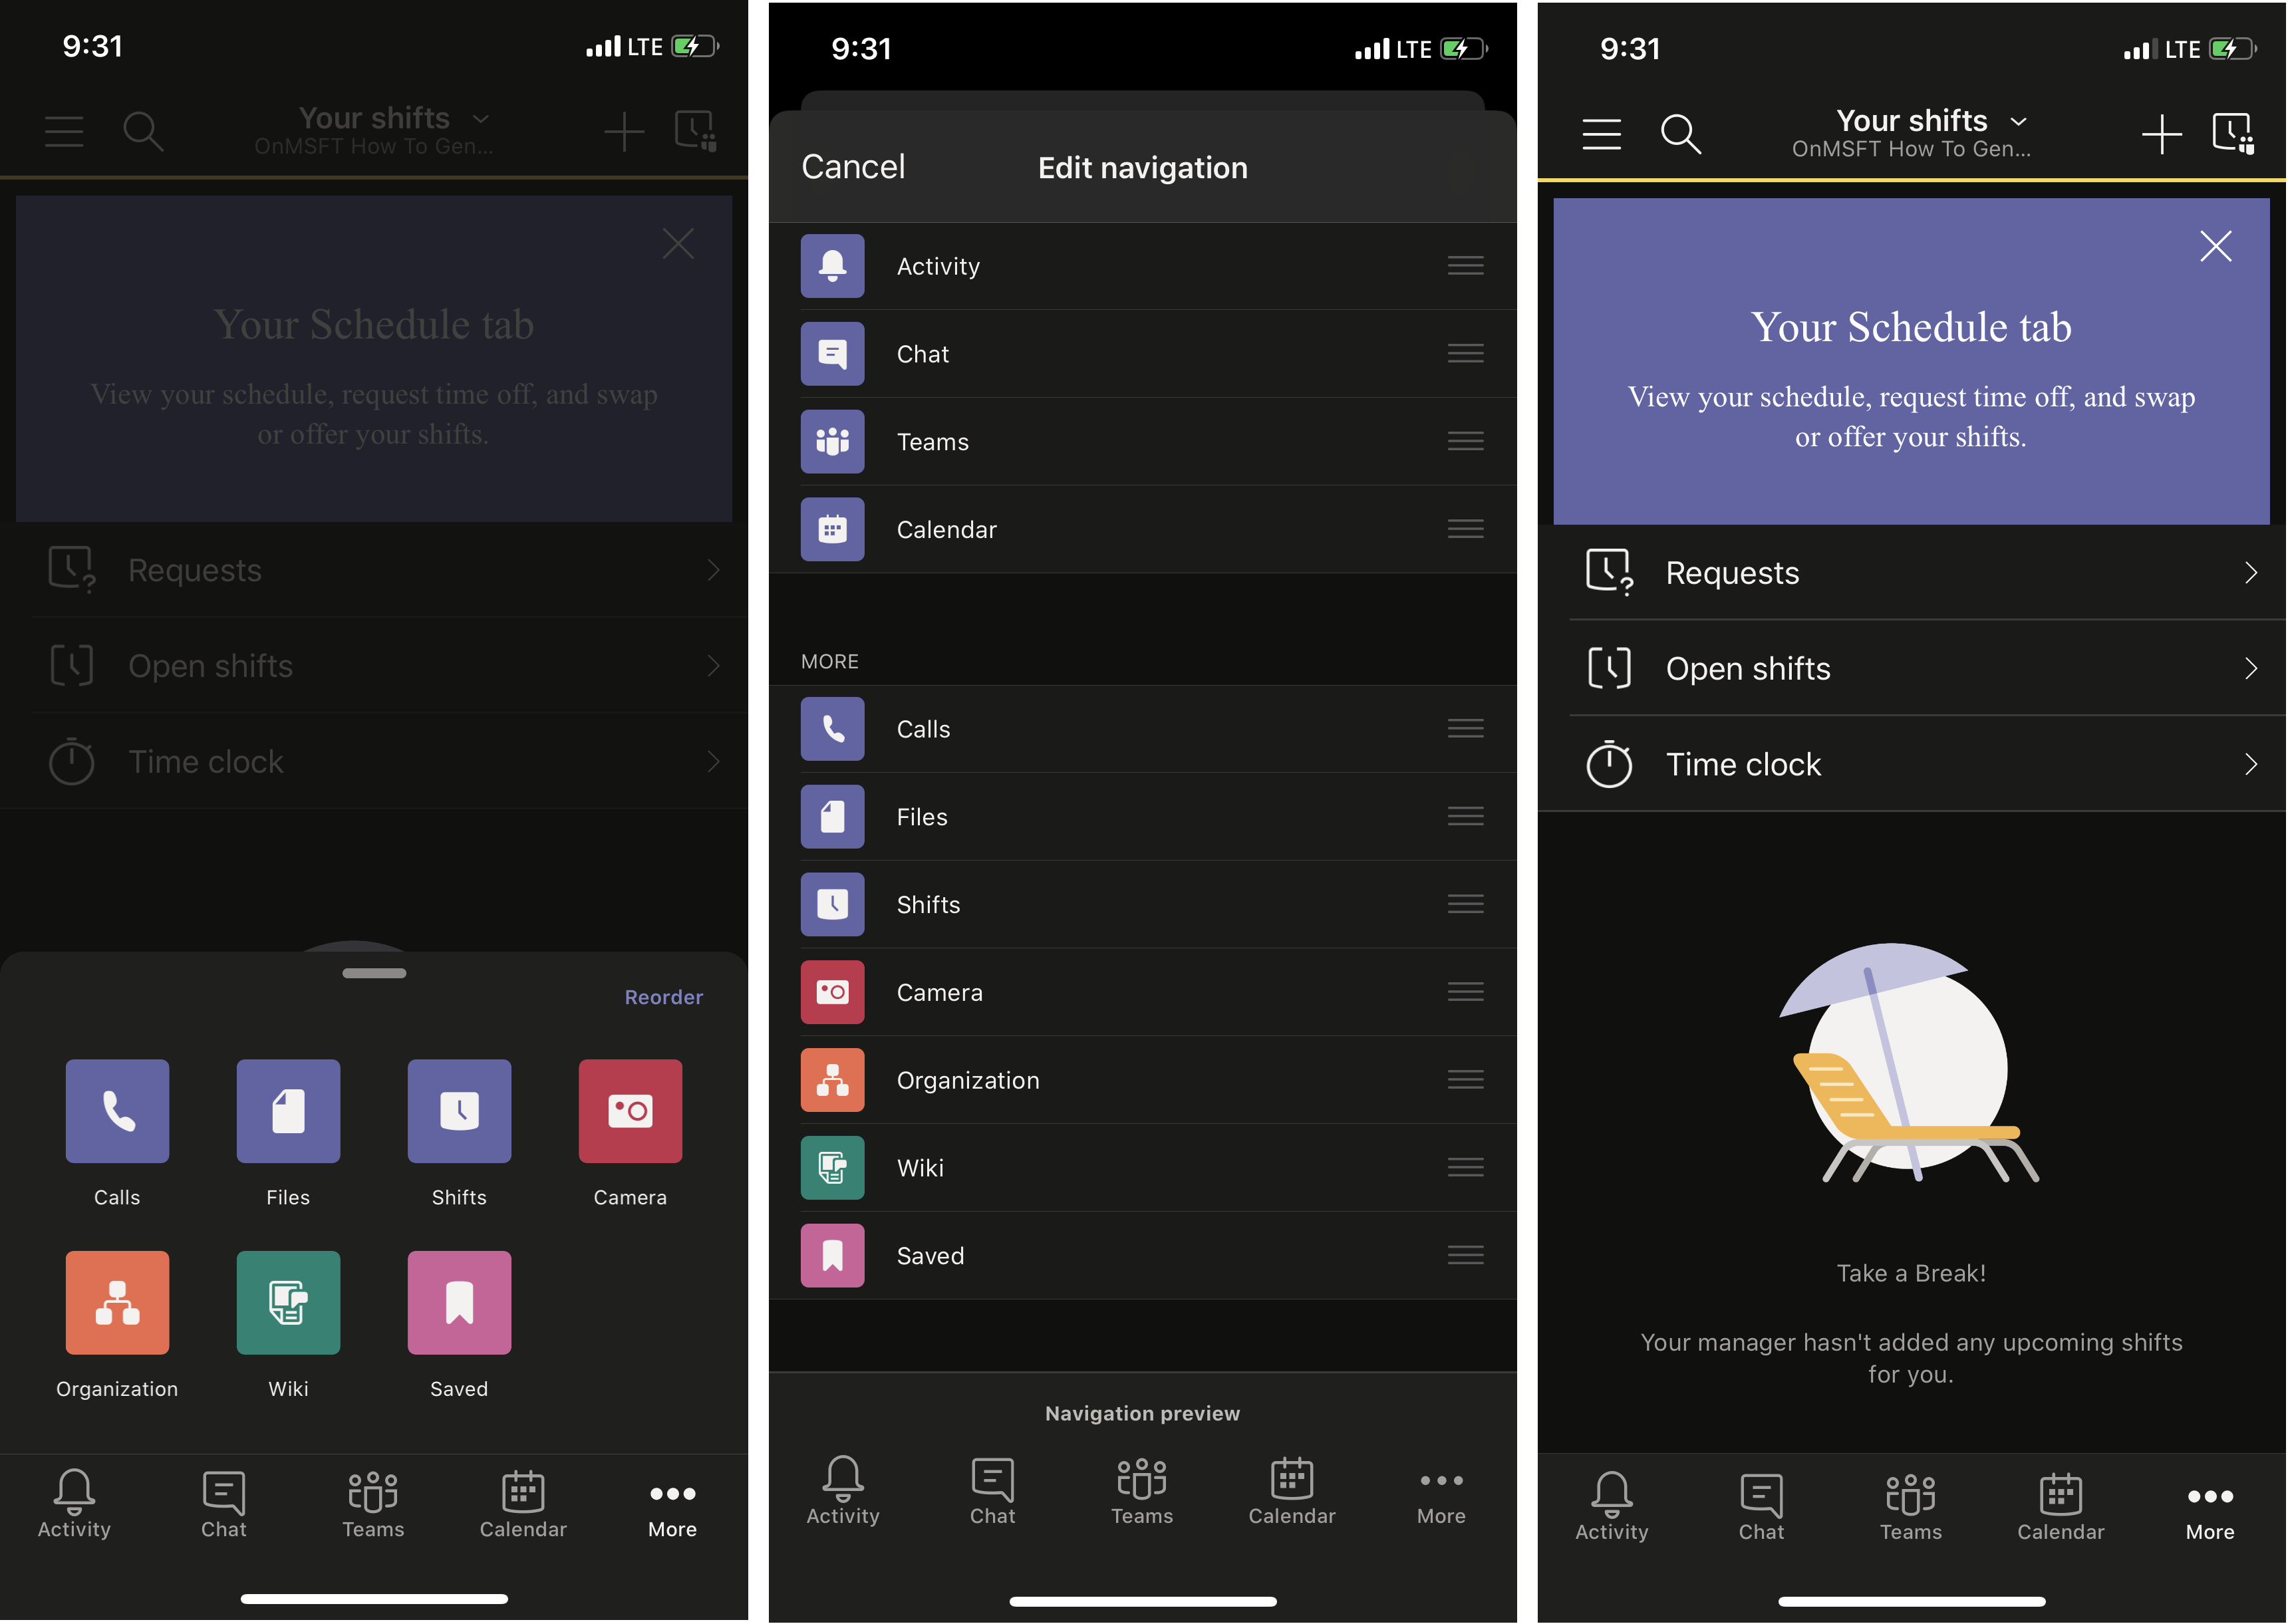 How to use the time clock in shifts in teams on ios and android - onmsft. Com - july 29, 2020